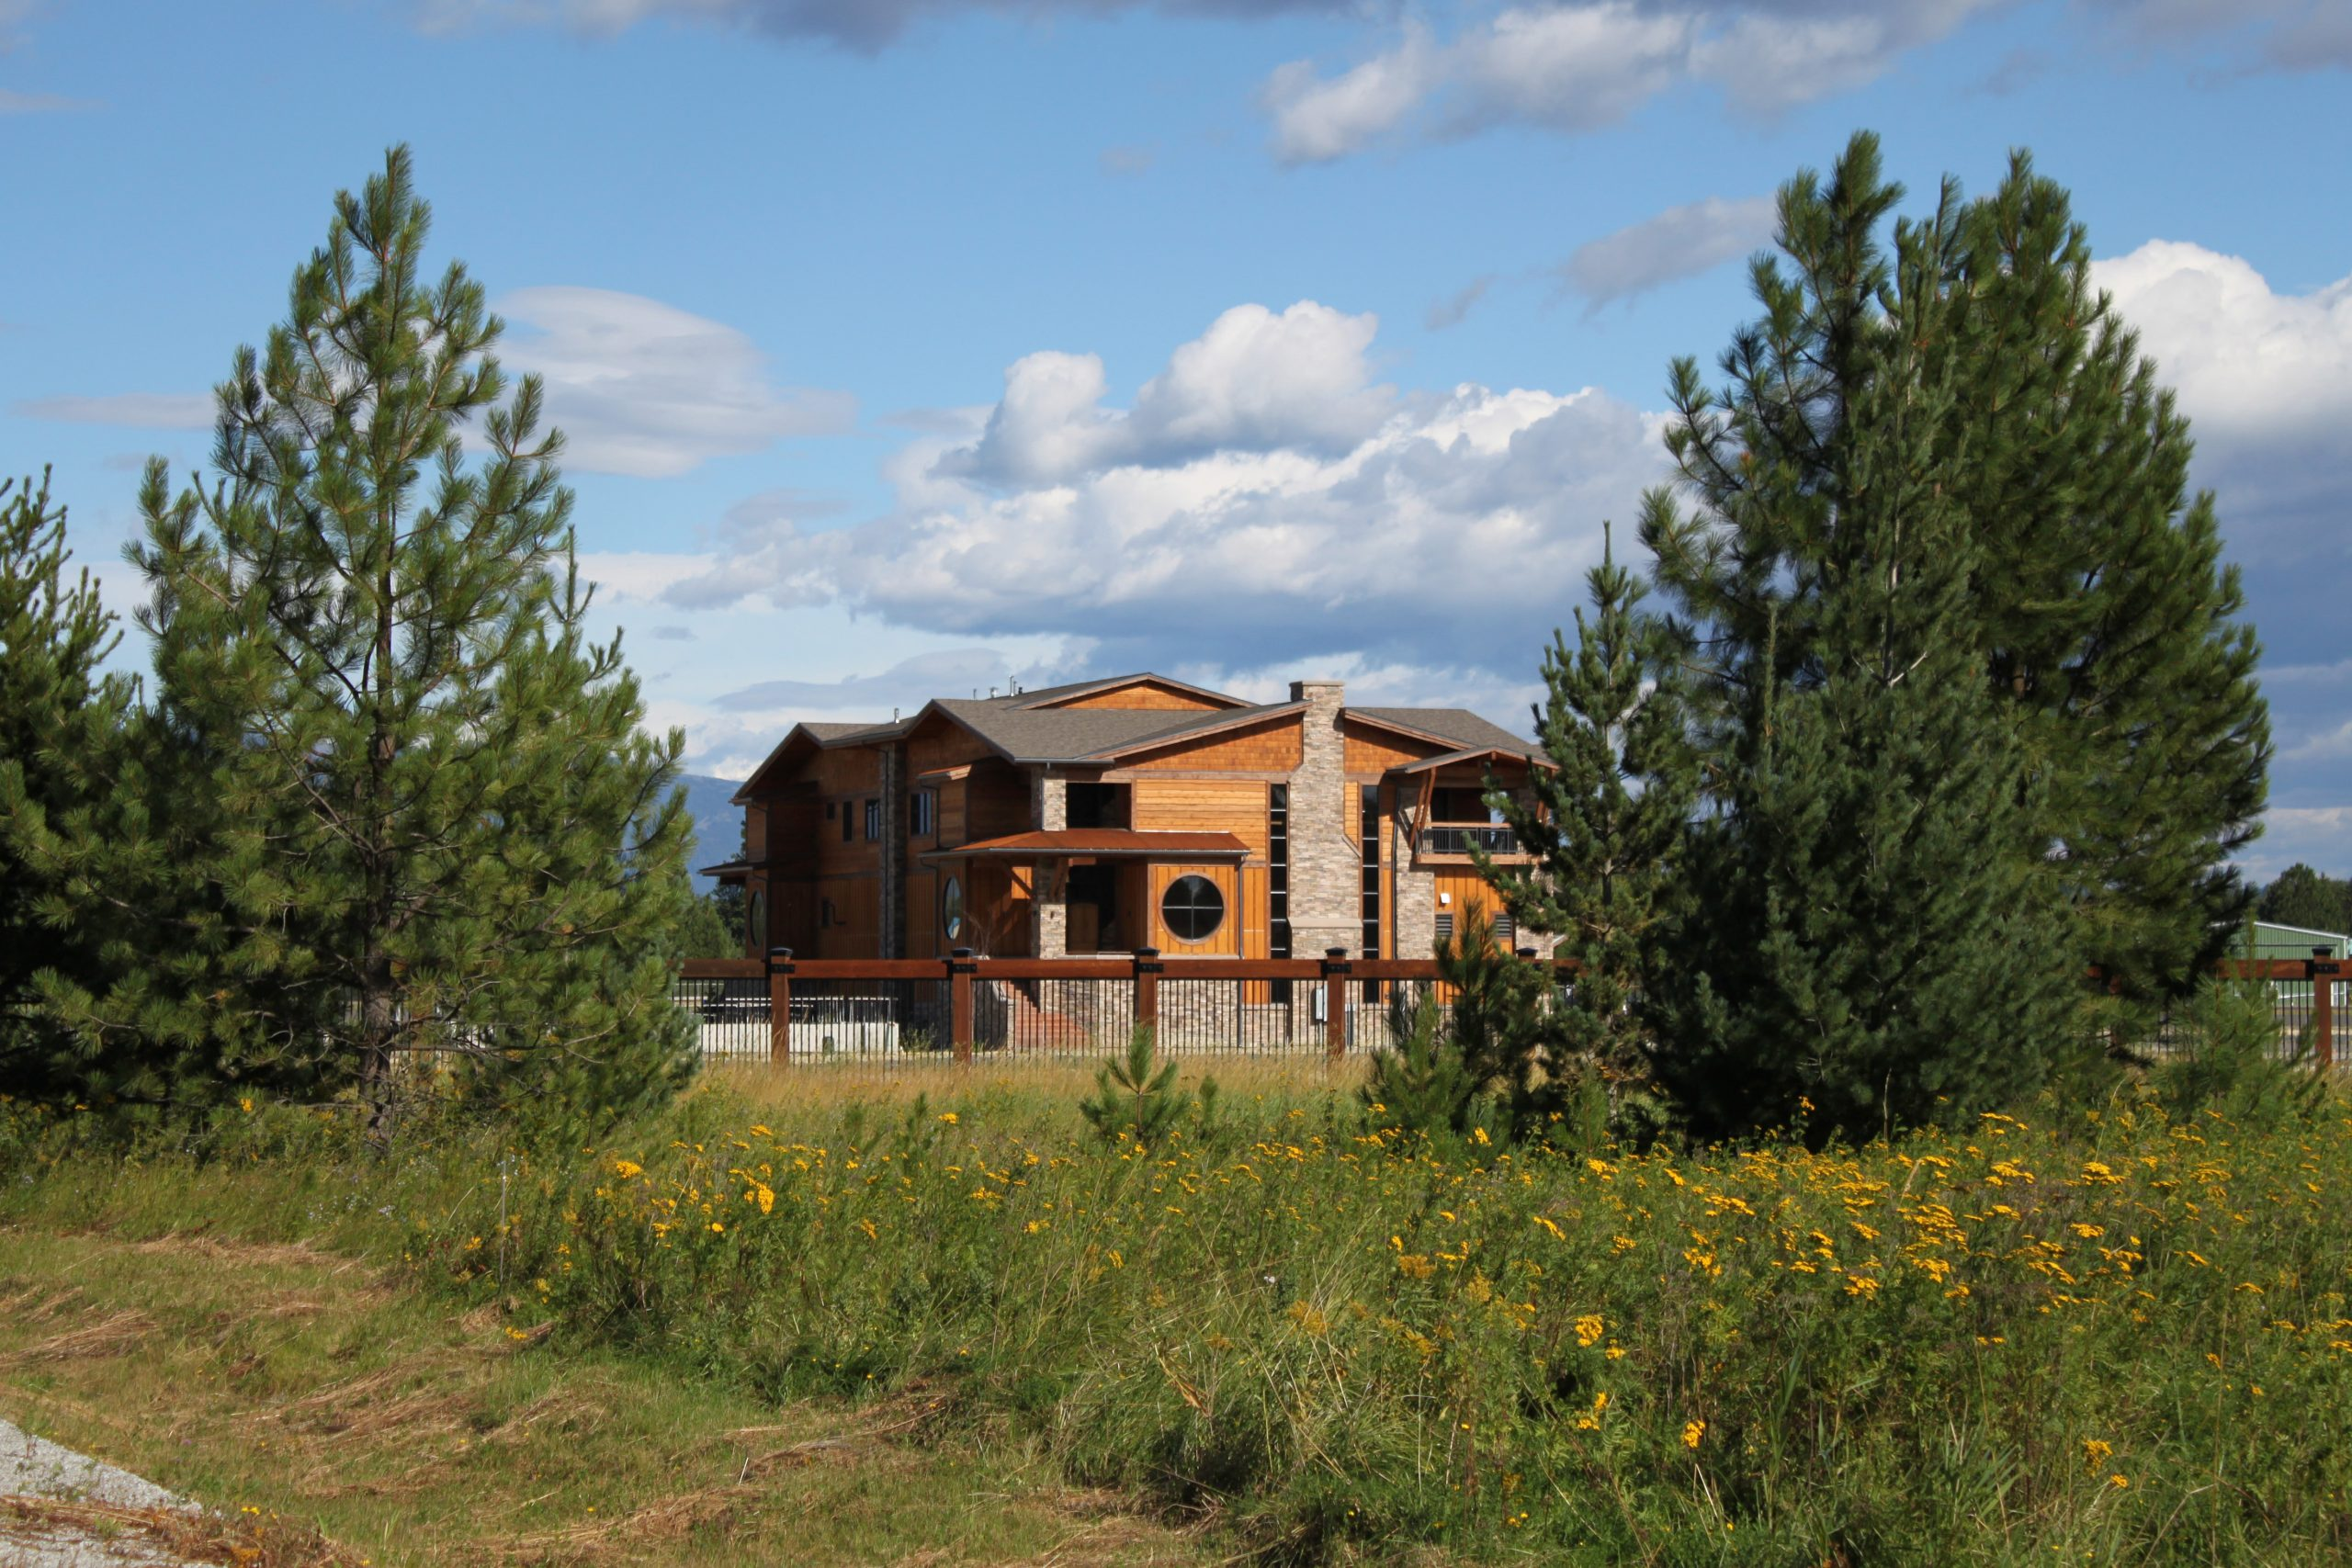 Silverwing is a custom duplex located at the public airport in Sandpoint, Idaho. The building features natural materials, and Northwest architectural detailing, such as, exposed timbers and stained cedar siding.